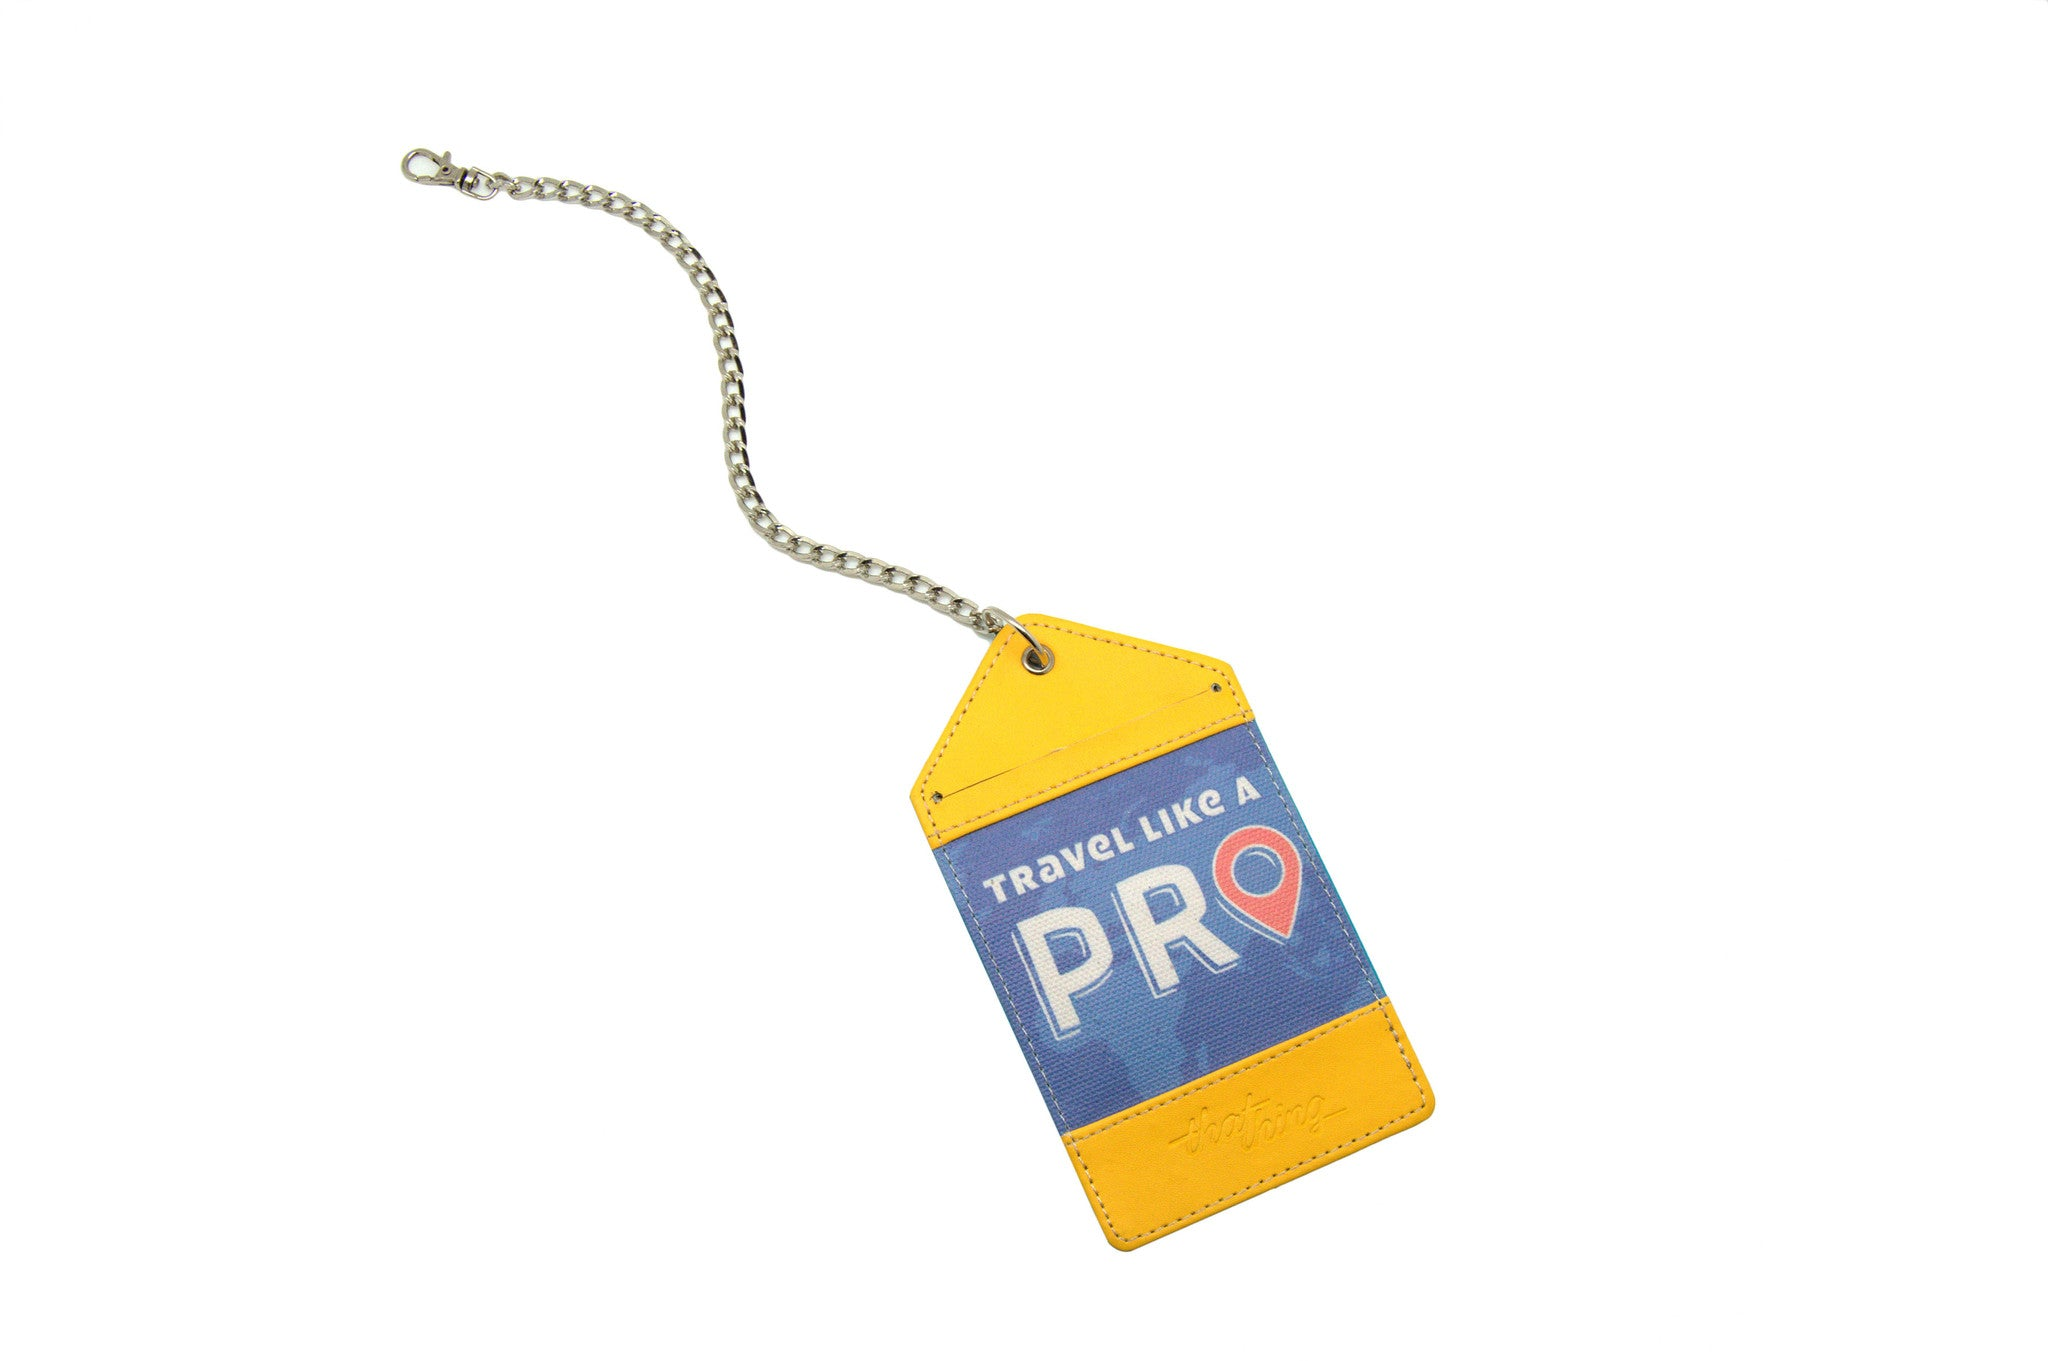 Yellow Blue Luggage Tag Bag Tag Travel Like A Pro Thathing_Chain Open